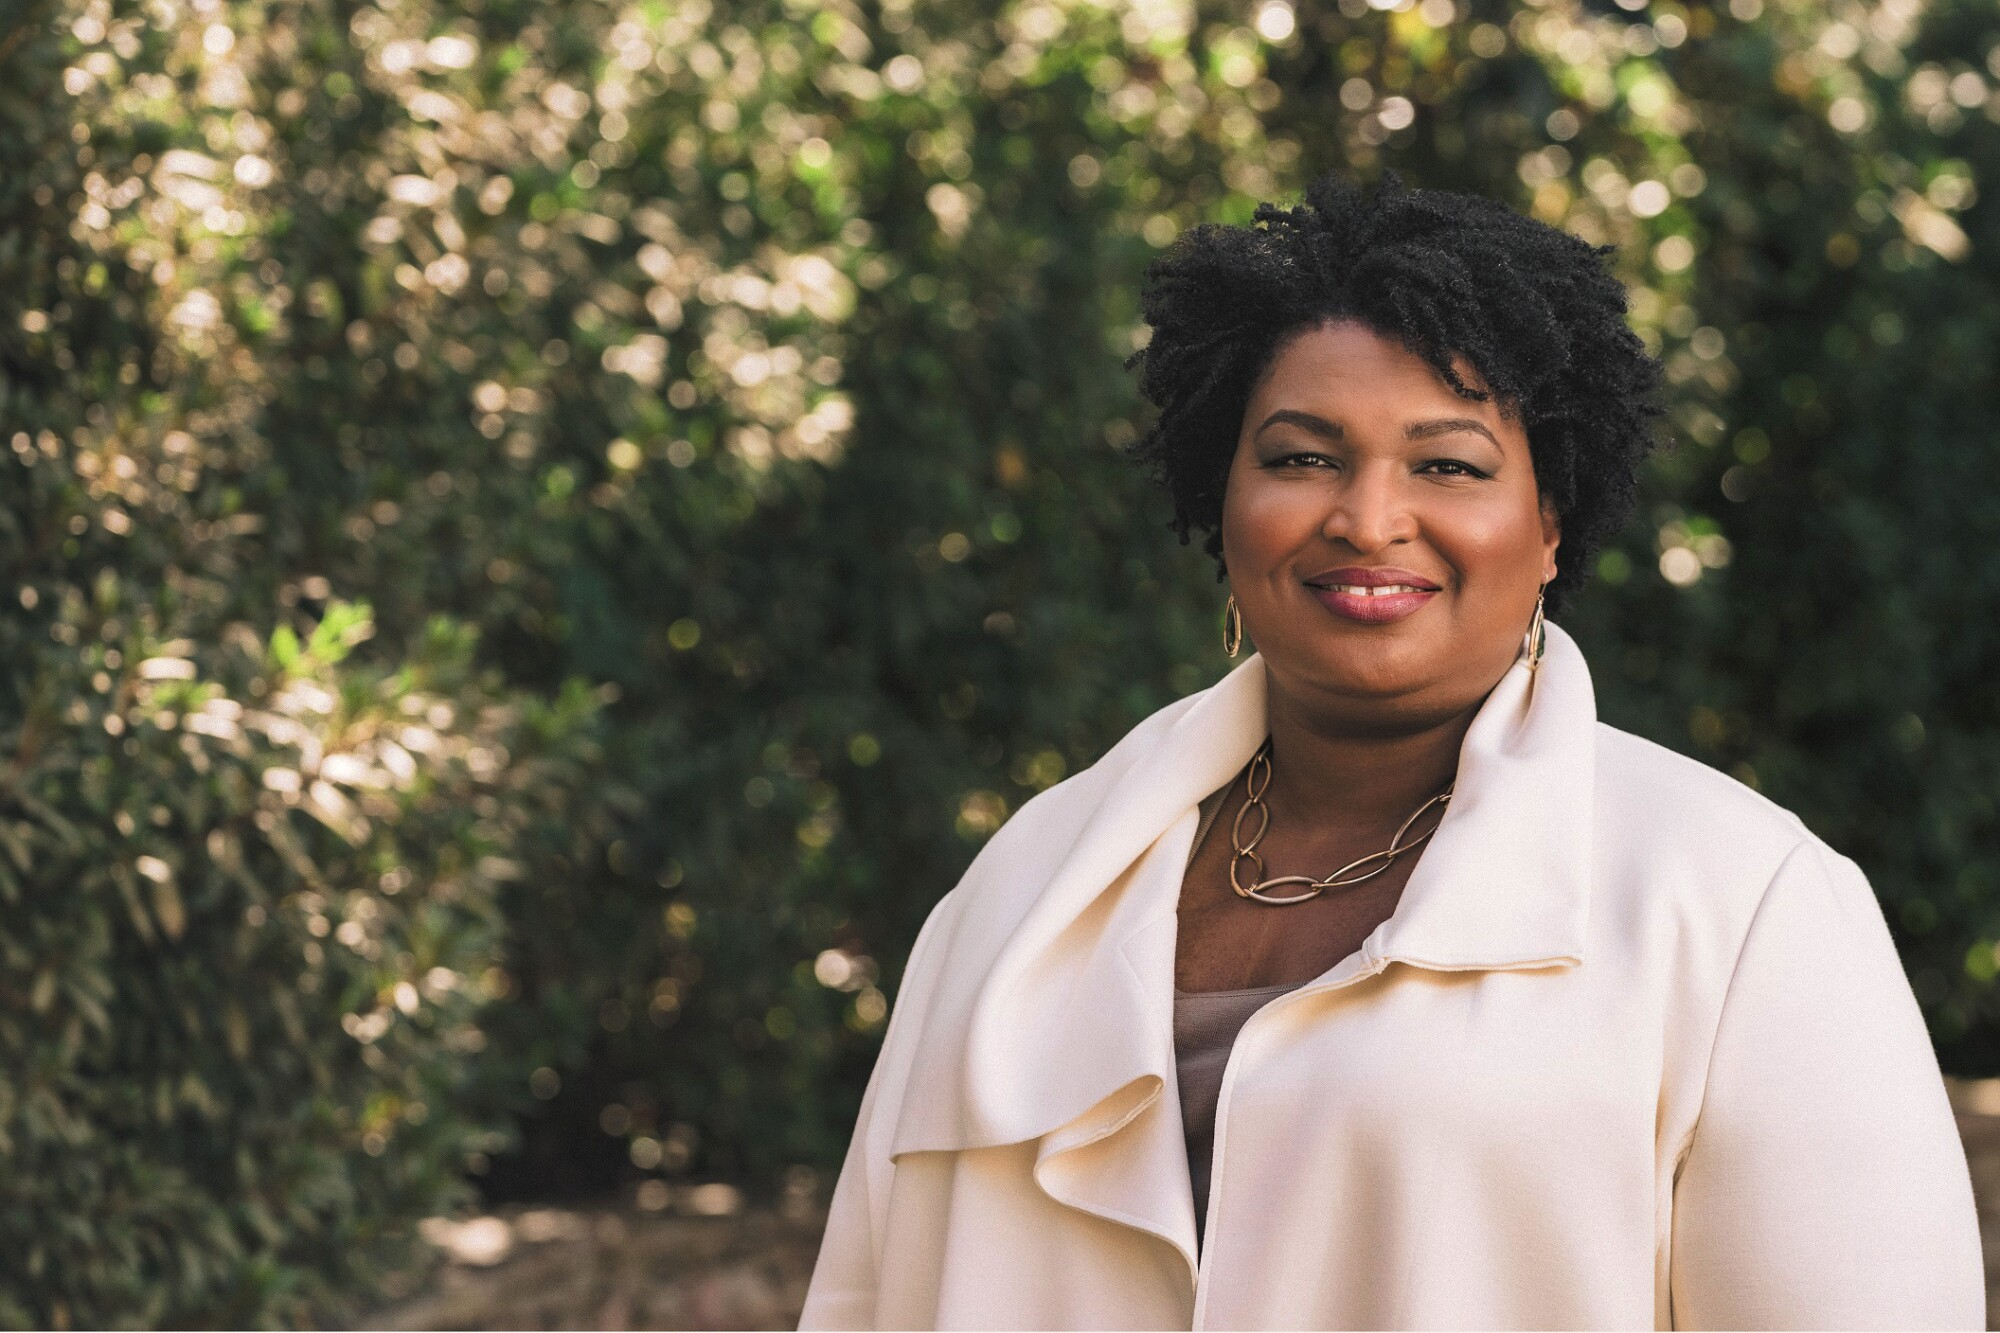 Stacey Abrams  smiles while standing in front of a group of trees and bushes.